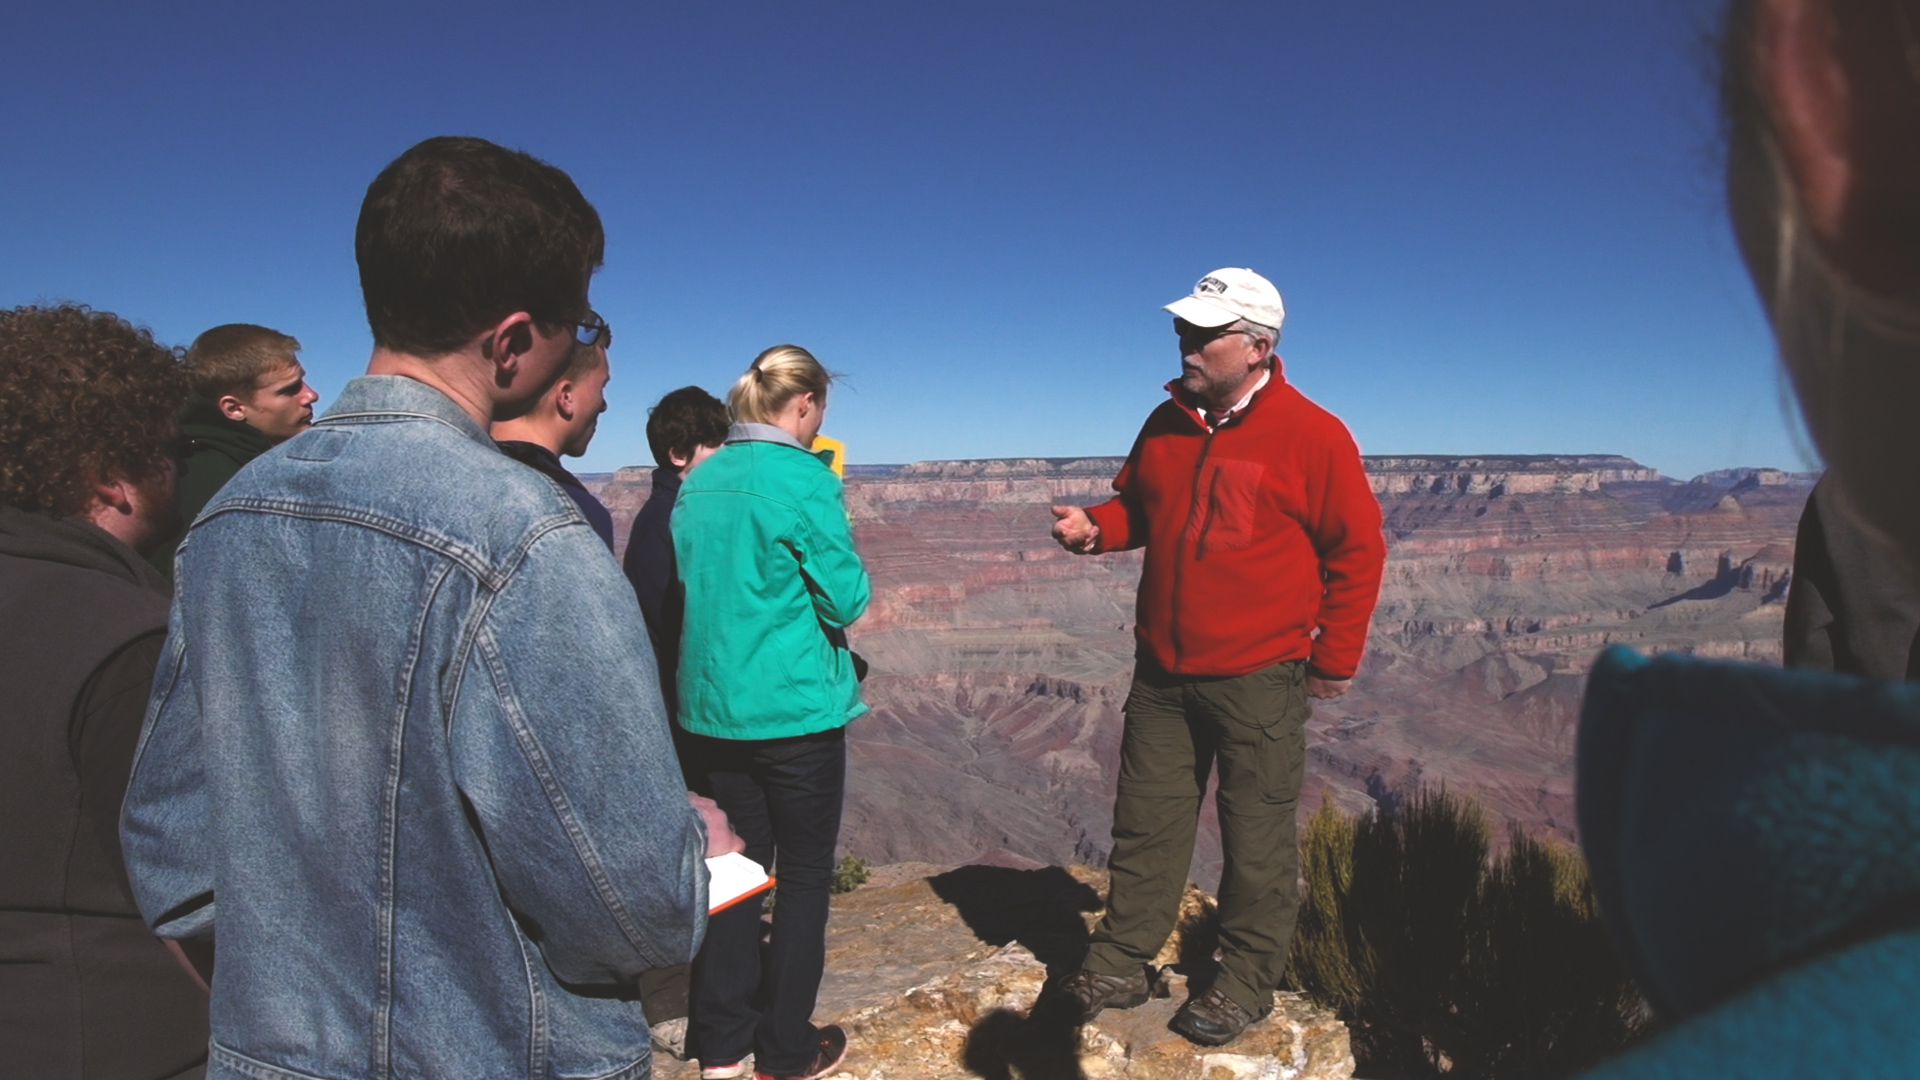 View thumbnail for Experience the Grand Canyon